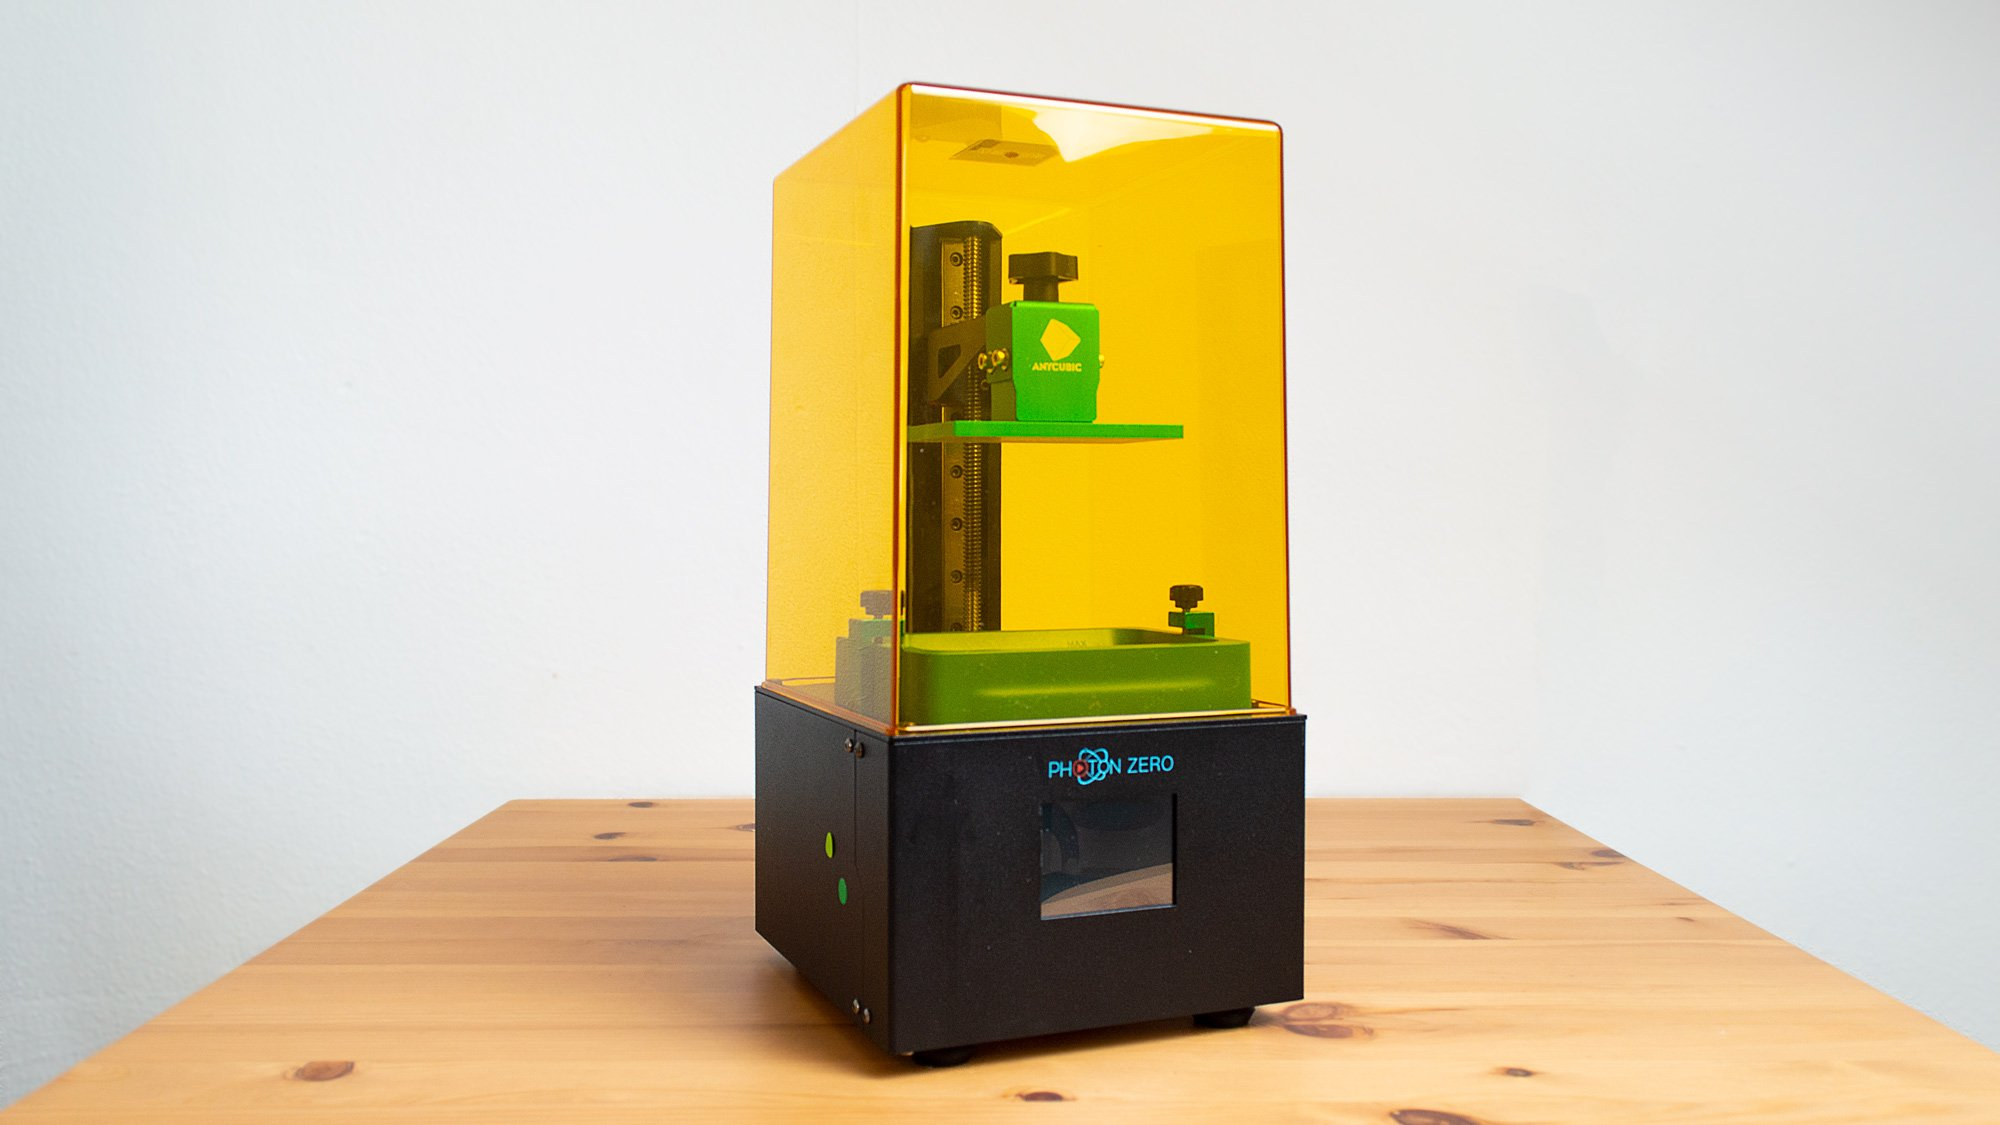 Anycubic Photon Zero Review: Hands On | All3DP